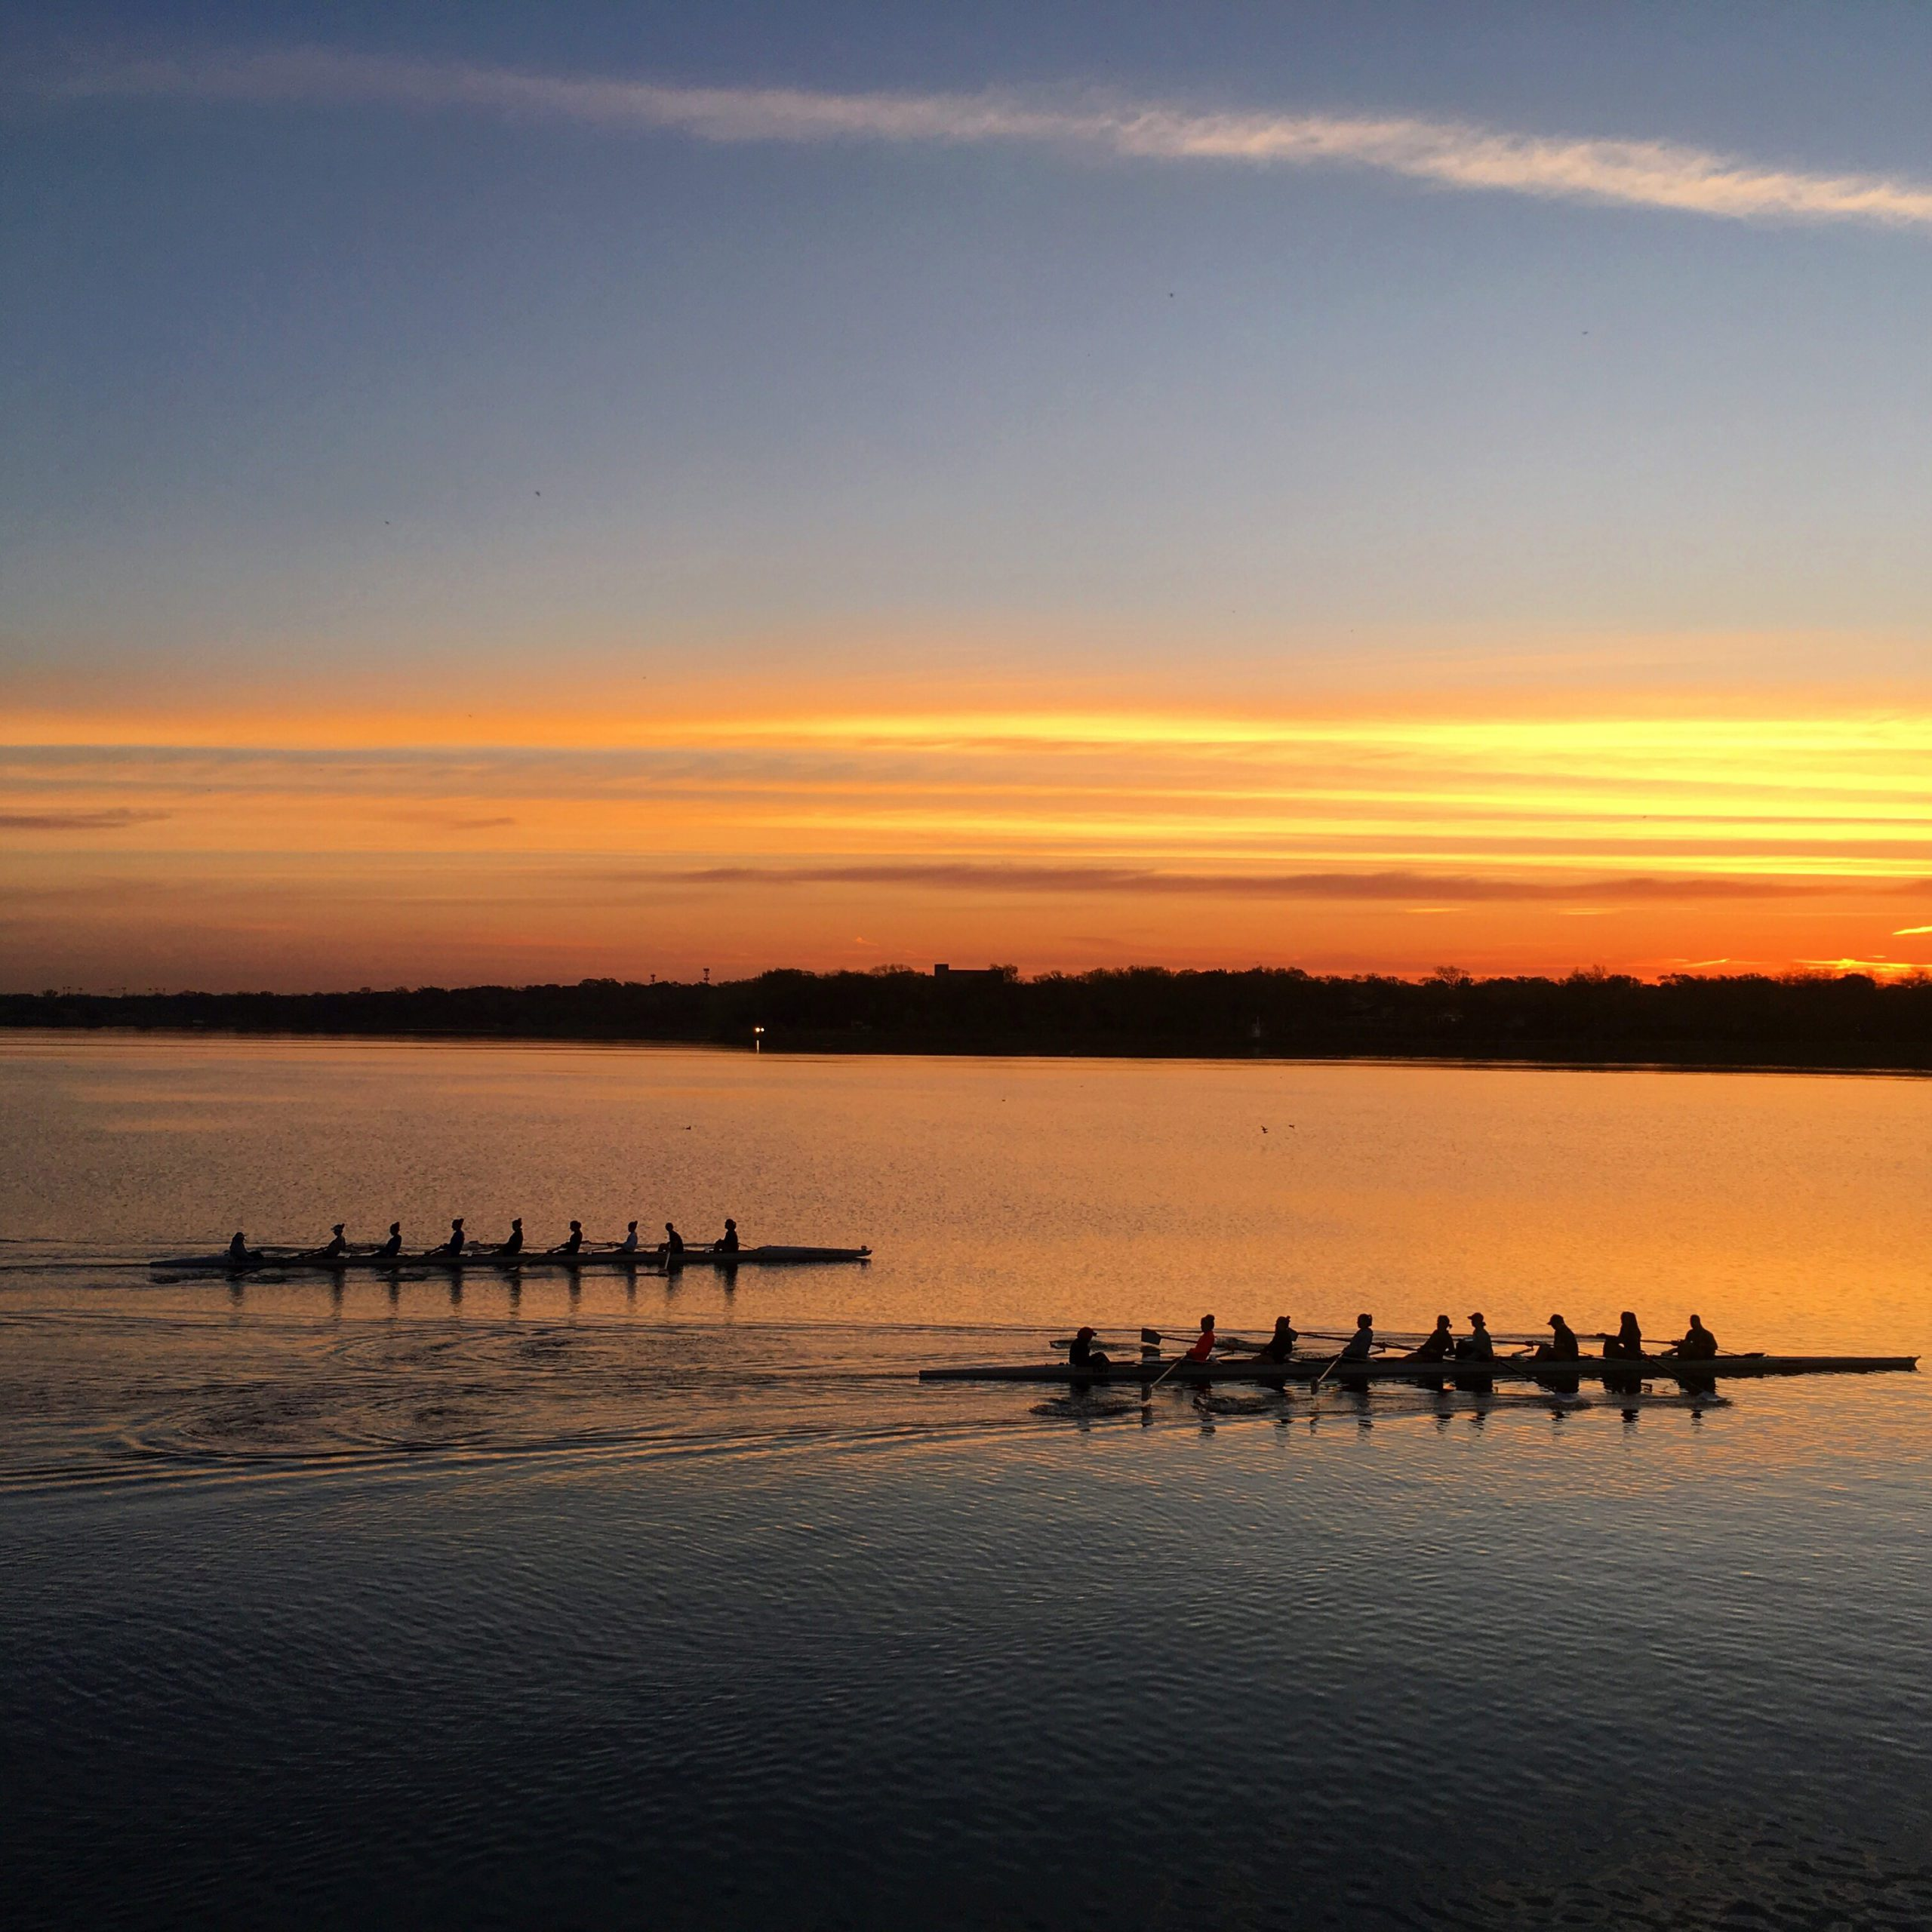 Sunset Rowers by Sue Benner